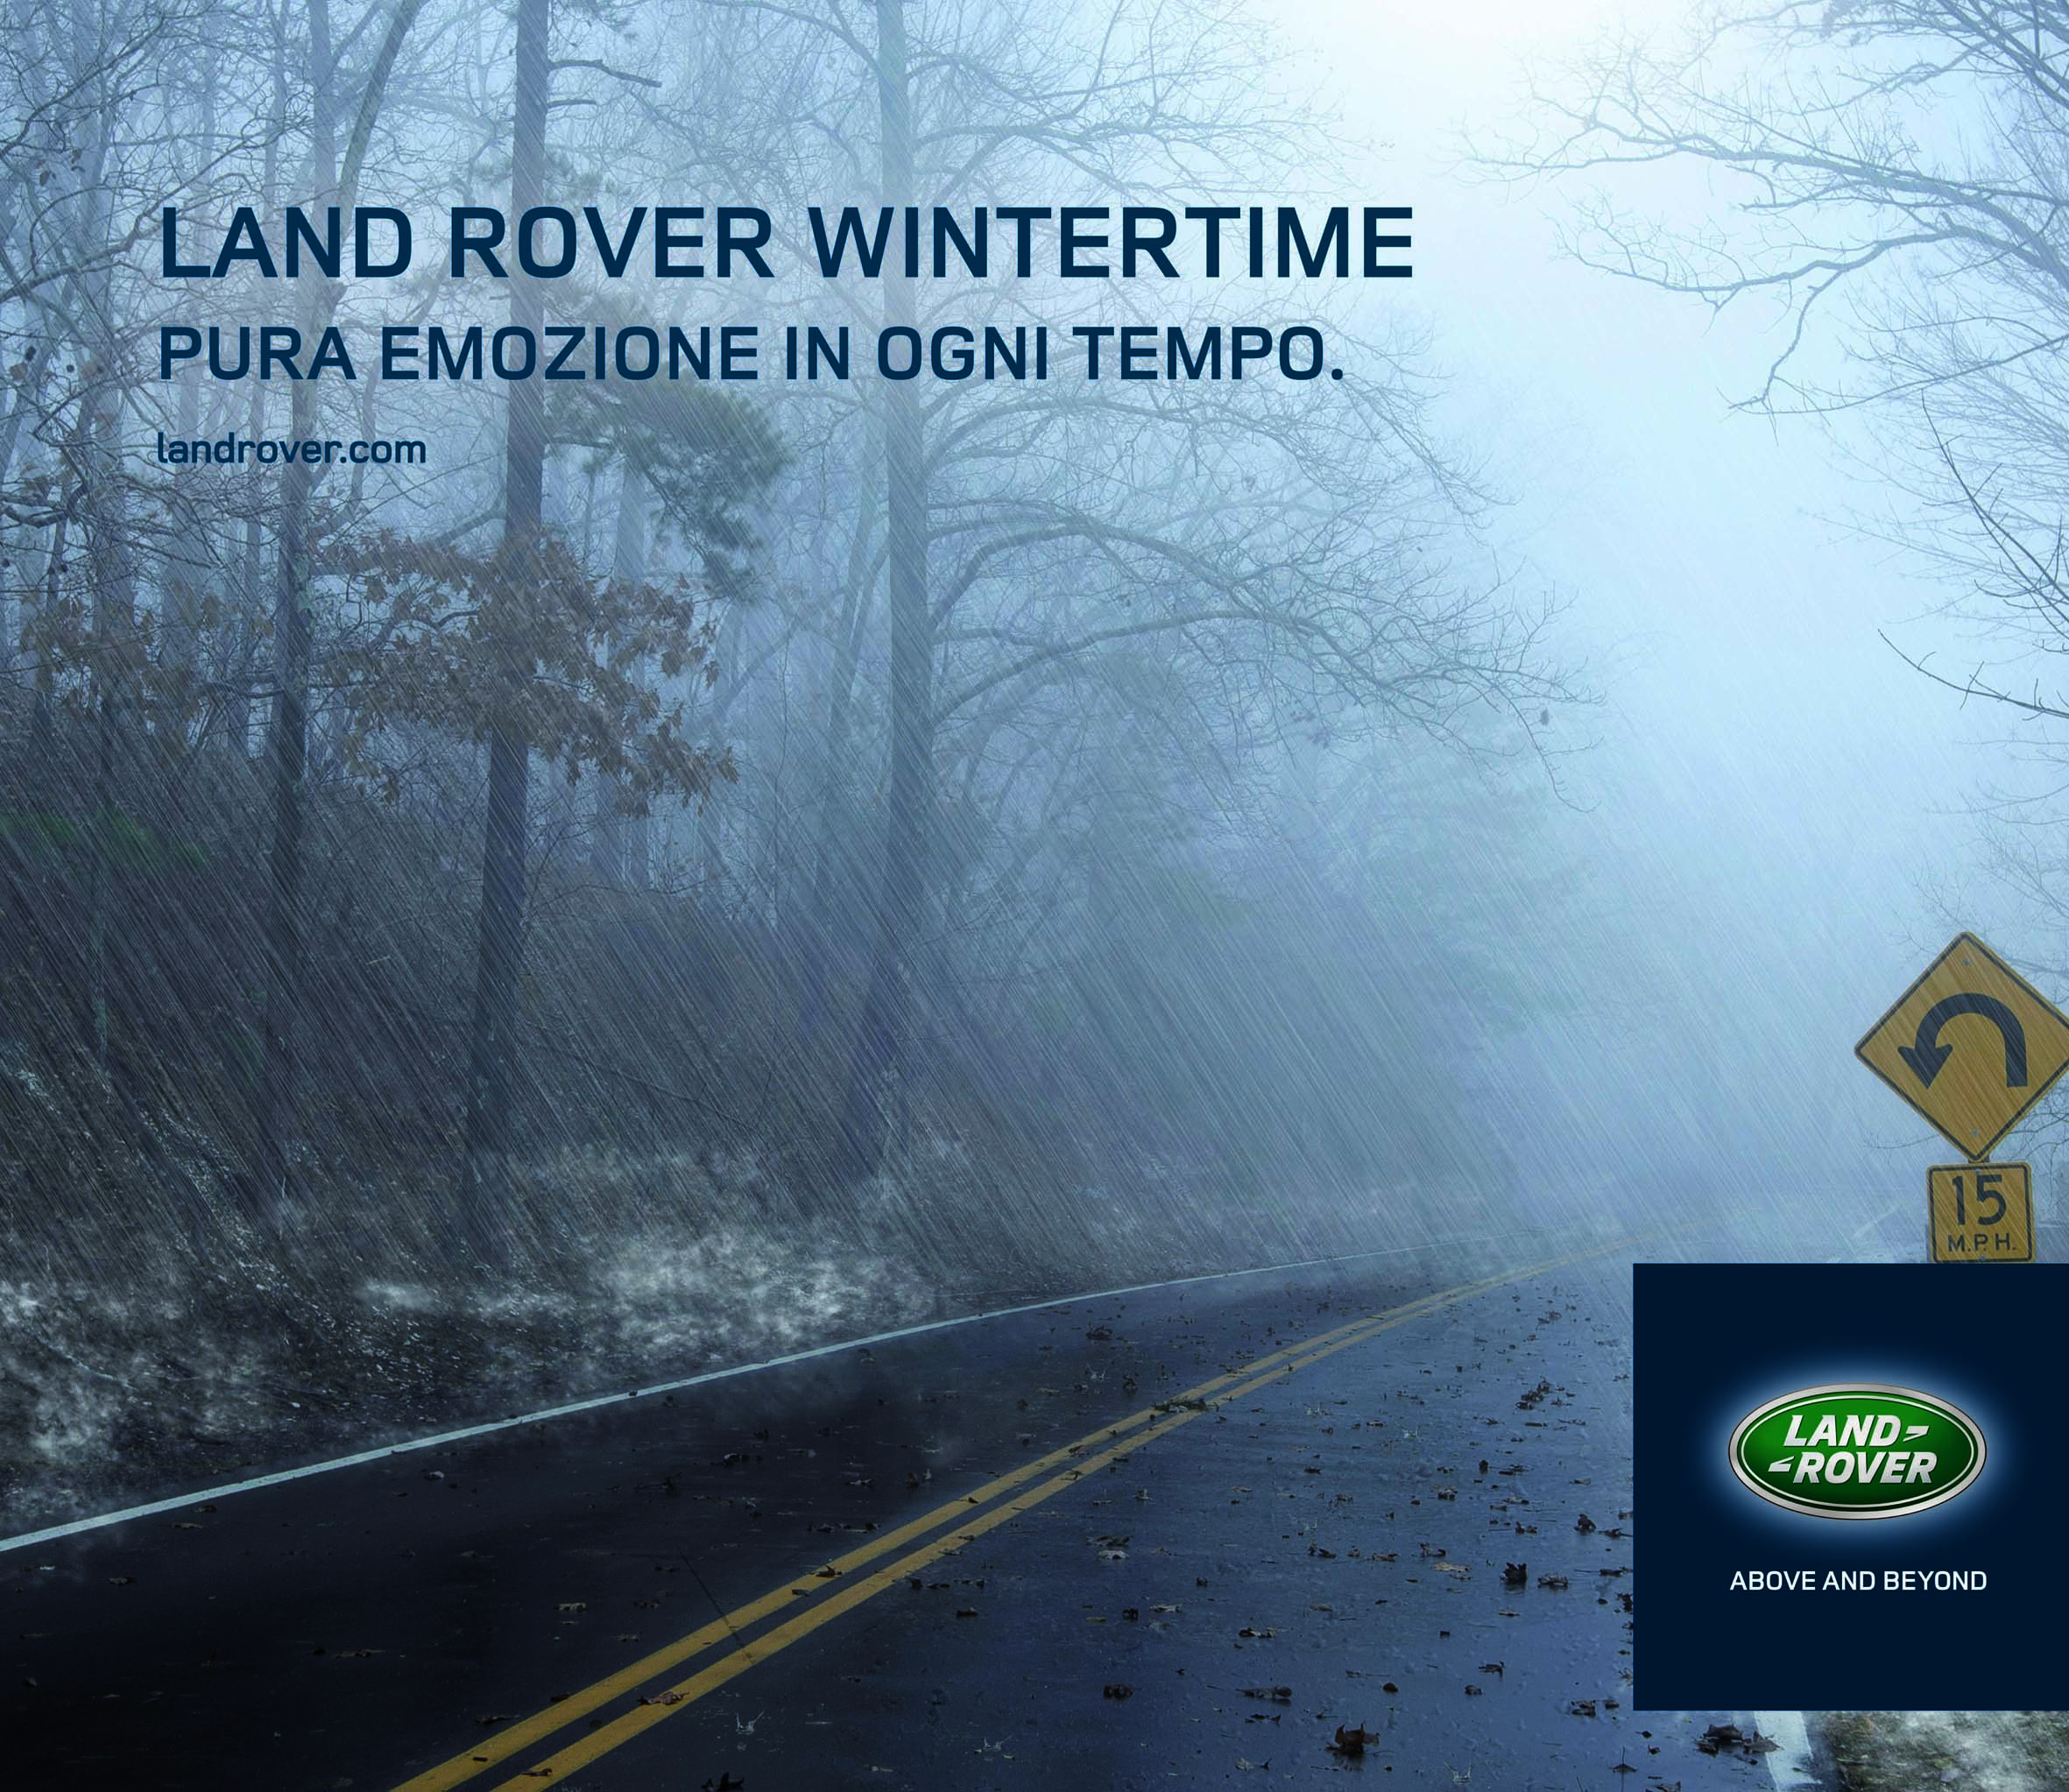 Jaguar Winter Tour e Land Rover Wintertime